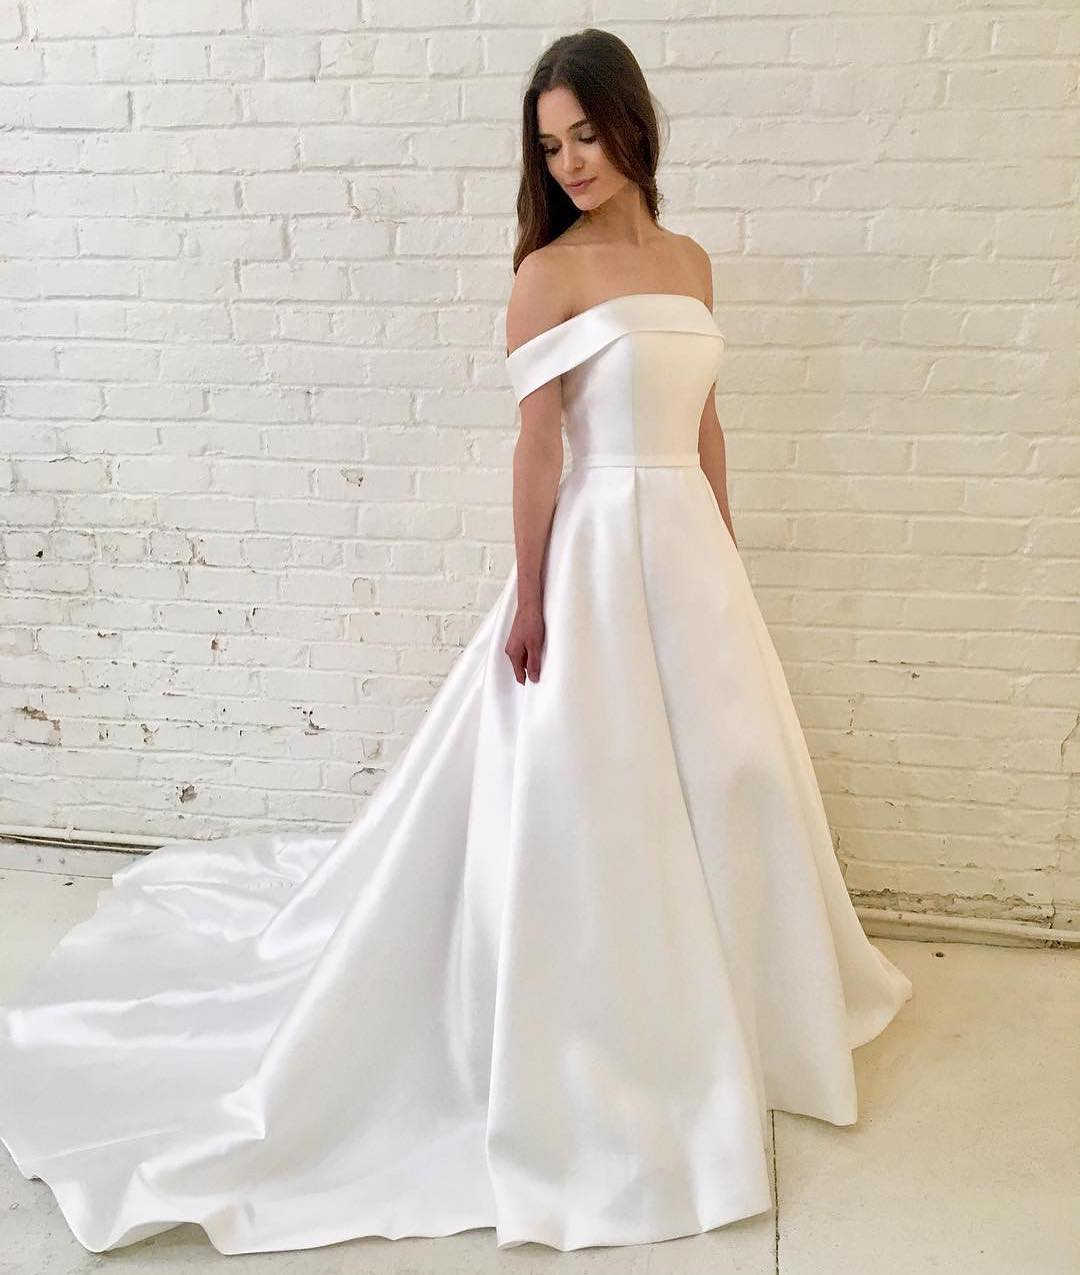 Gorgeous White Satin Wedding Dress Off Shoulder Sweep Train High Quality Free Shipping Bridal Gown From Yooyoodress